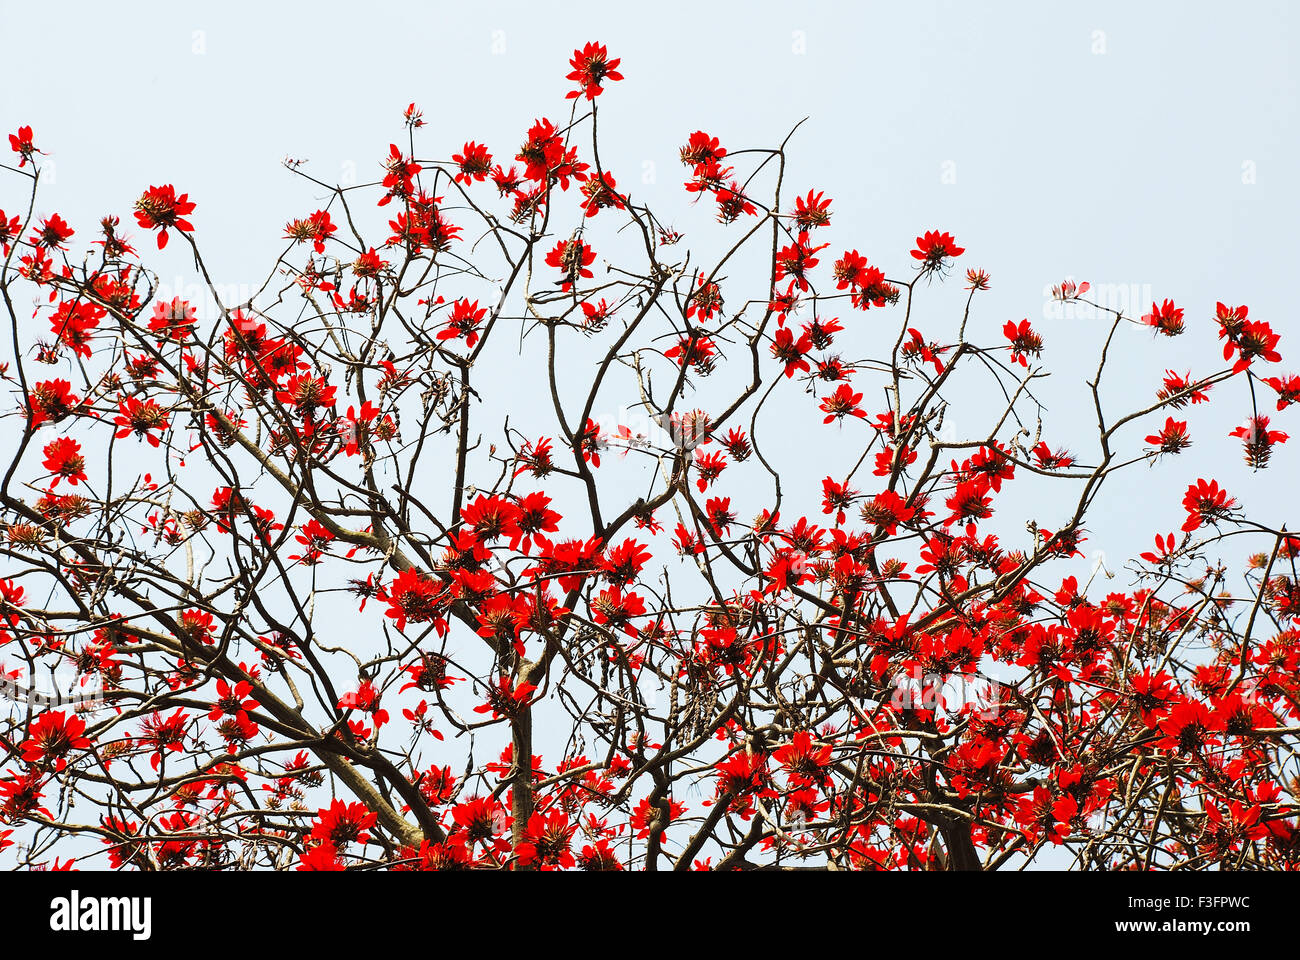 red flowers blooming in spring season india stock photo royalty